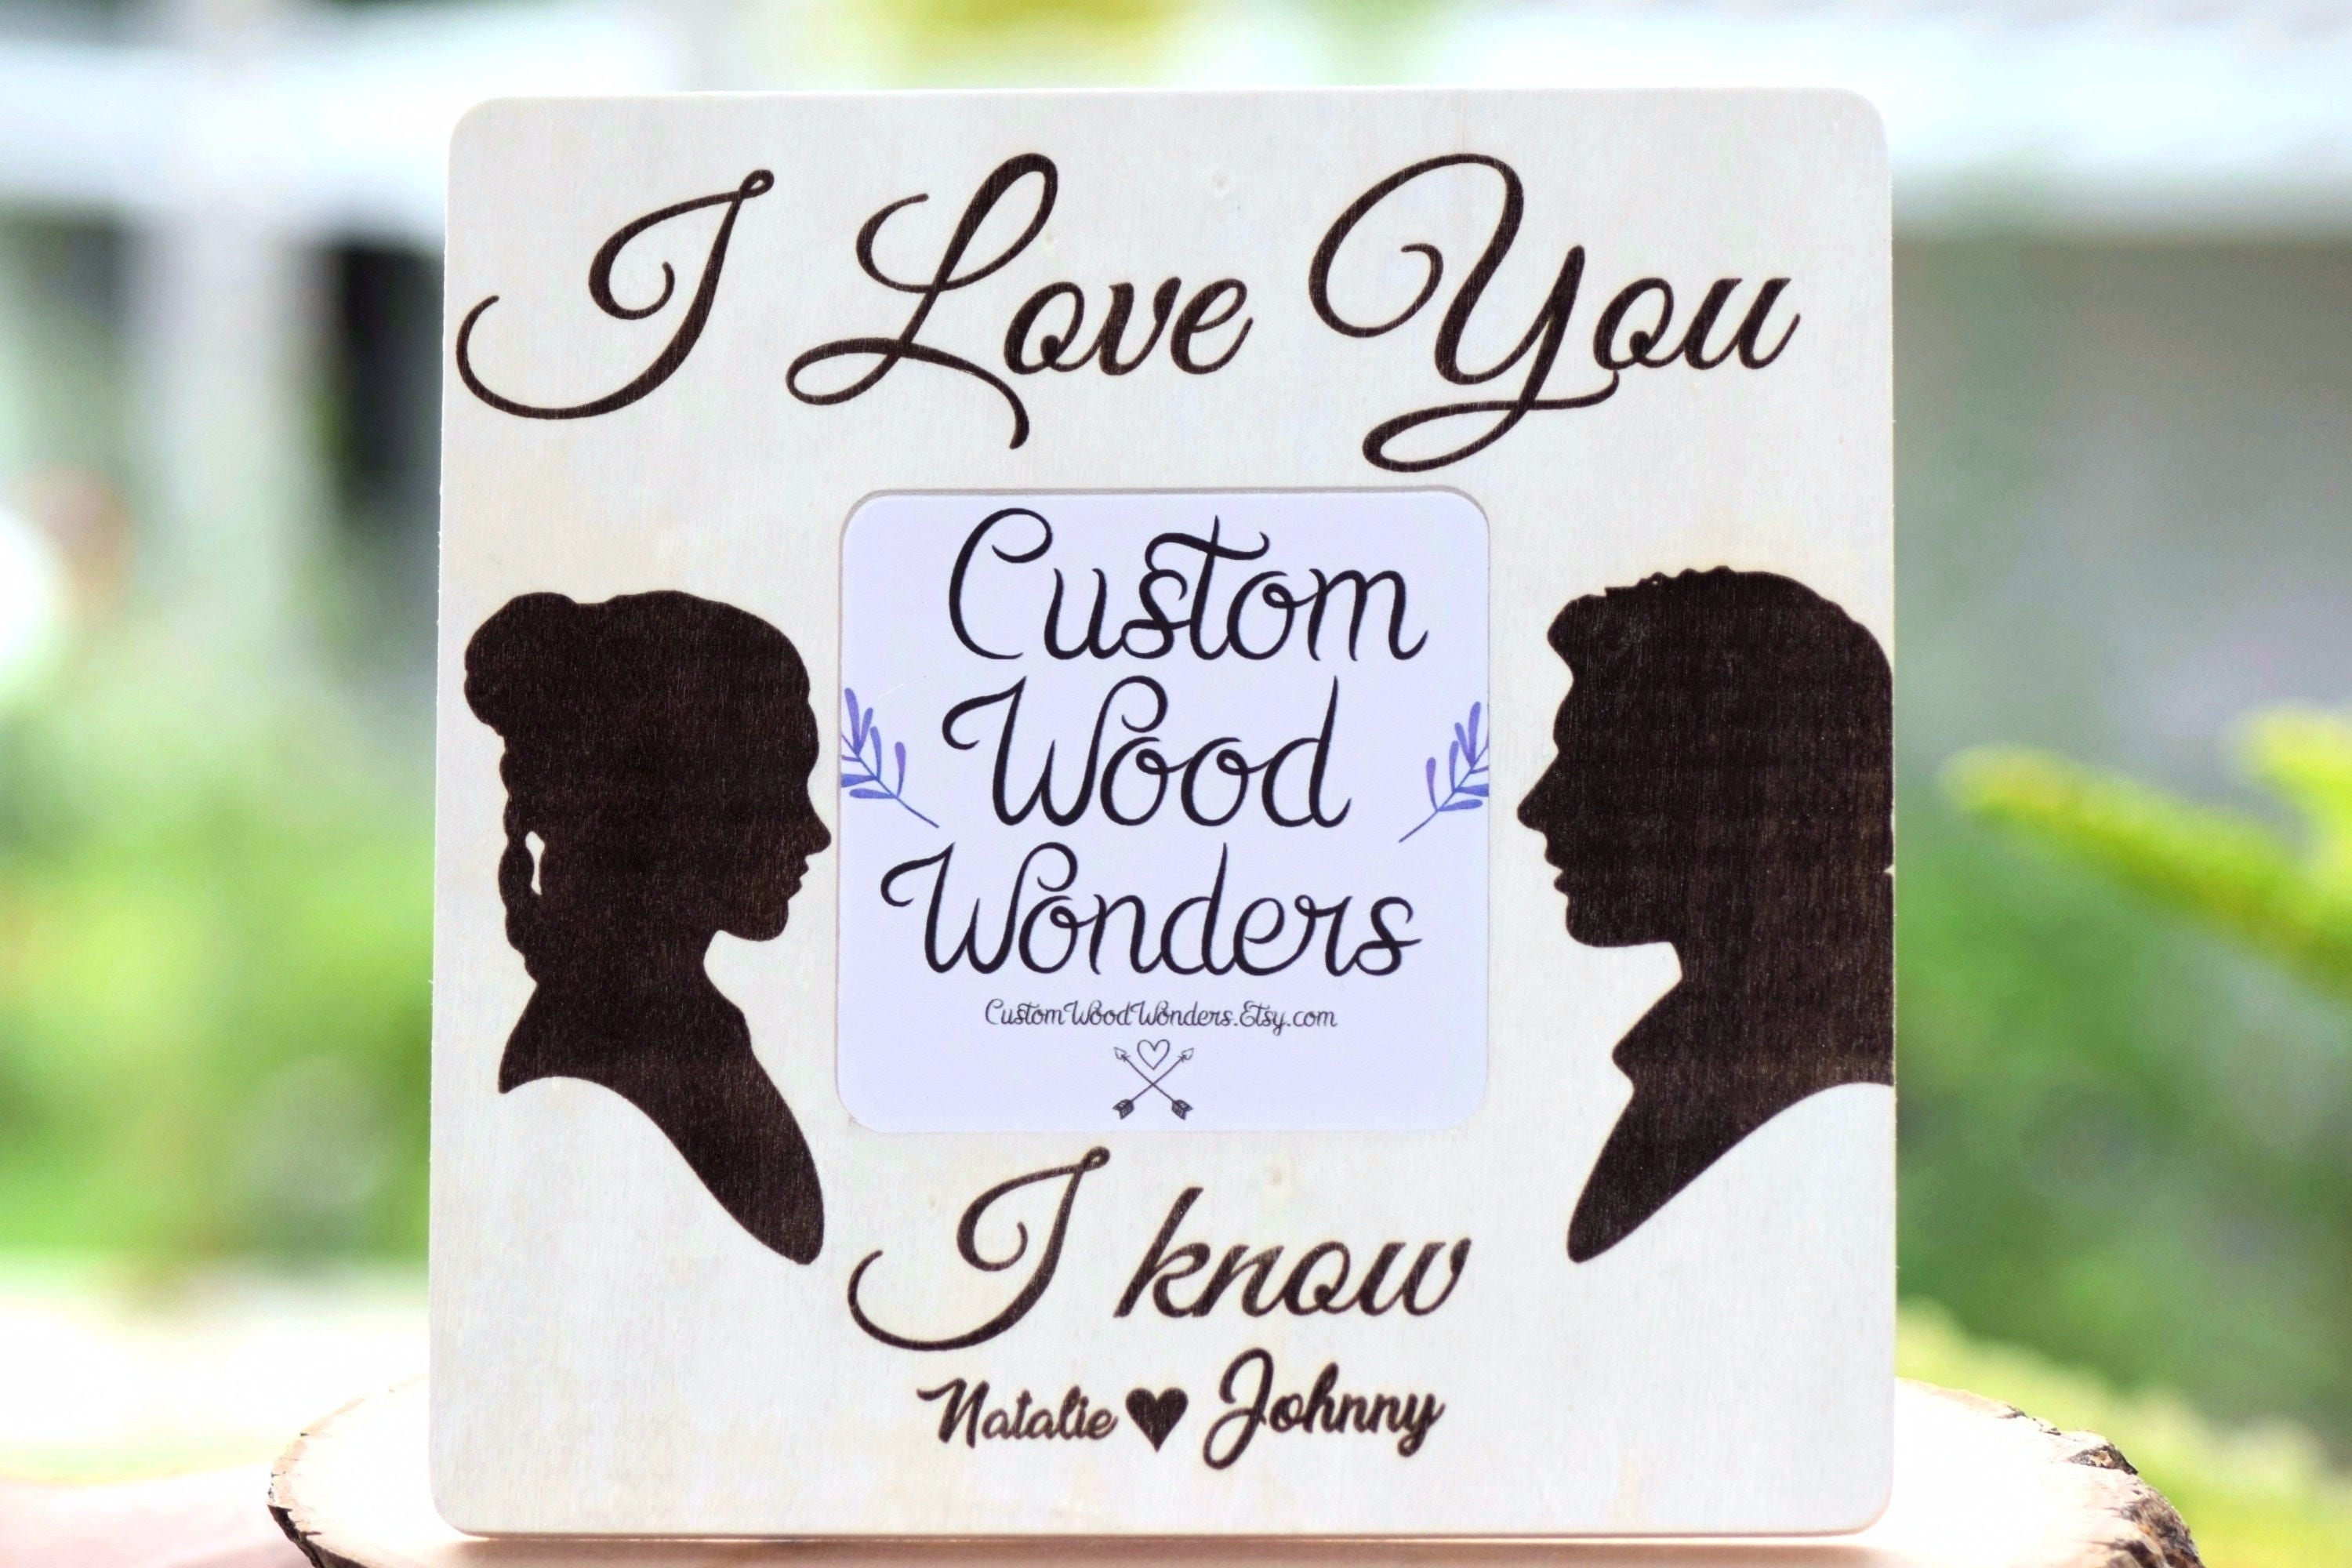 I Love You Know Star Wars Picture Frame Wedding